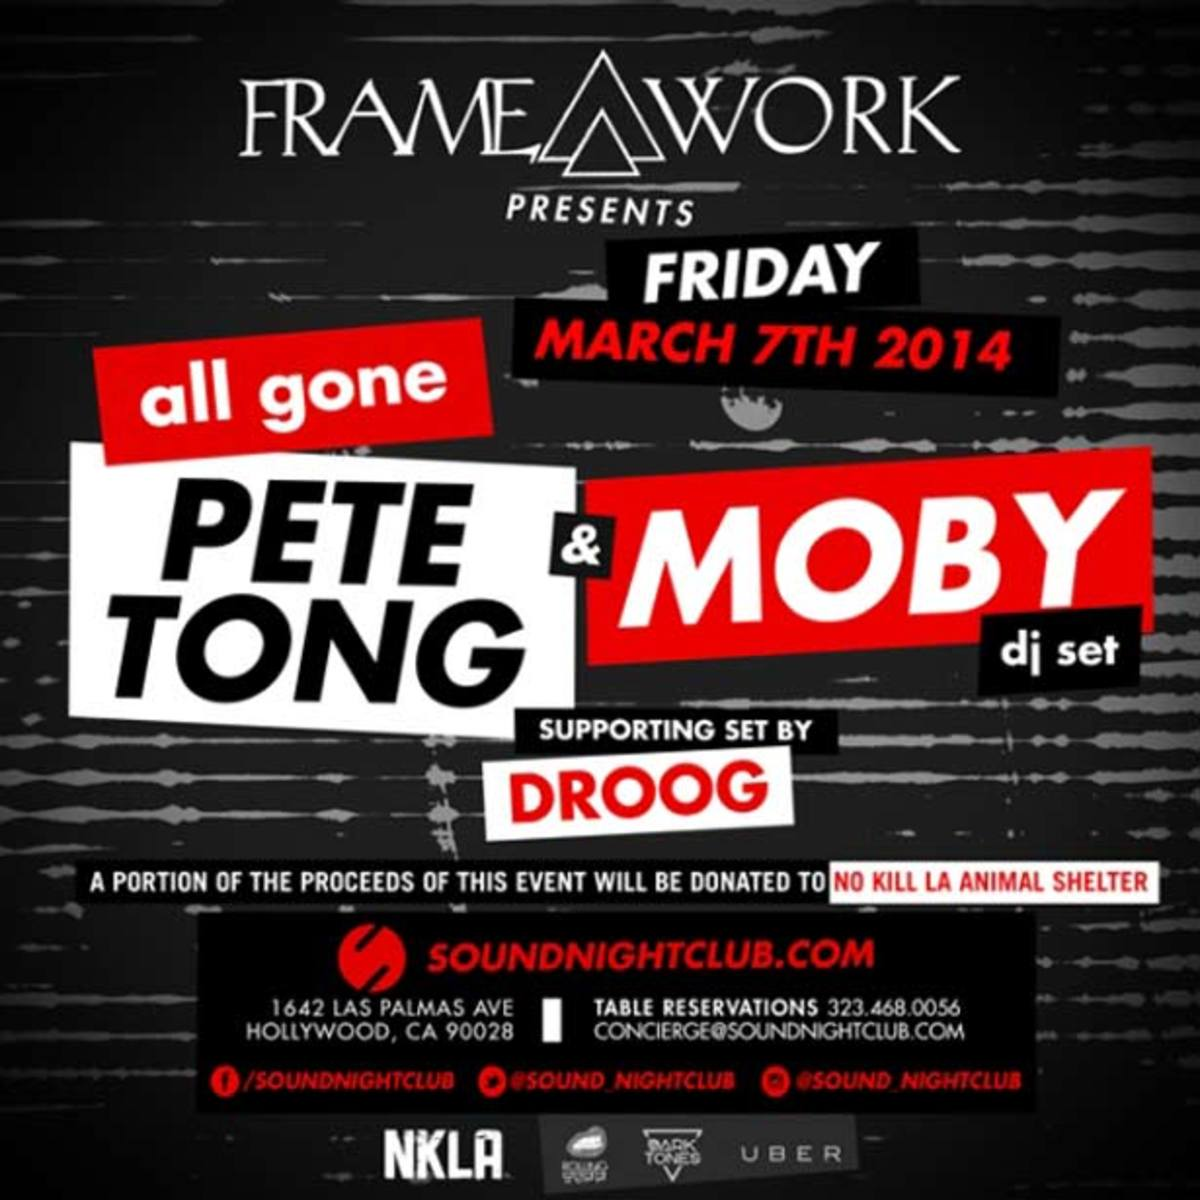 Moby To Join Pete Tong This Friday At Sound Hollywood